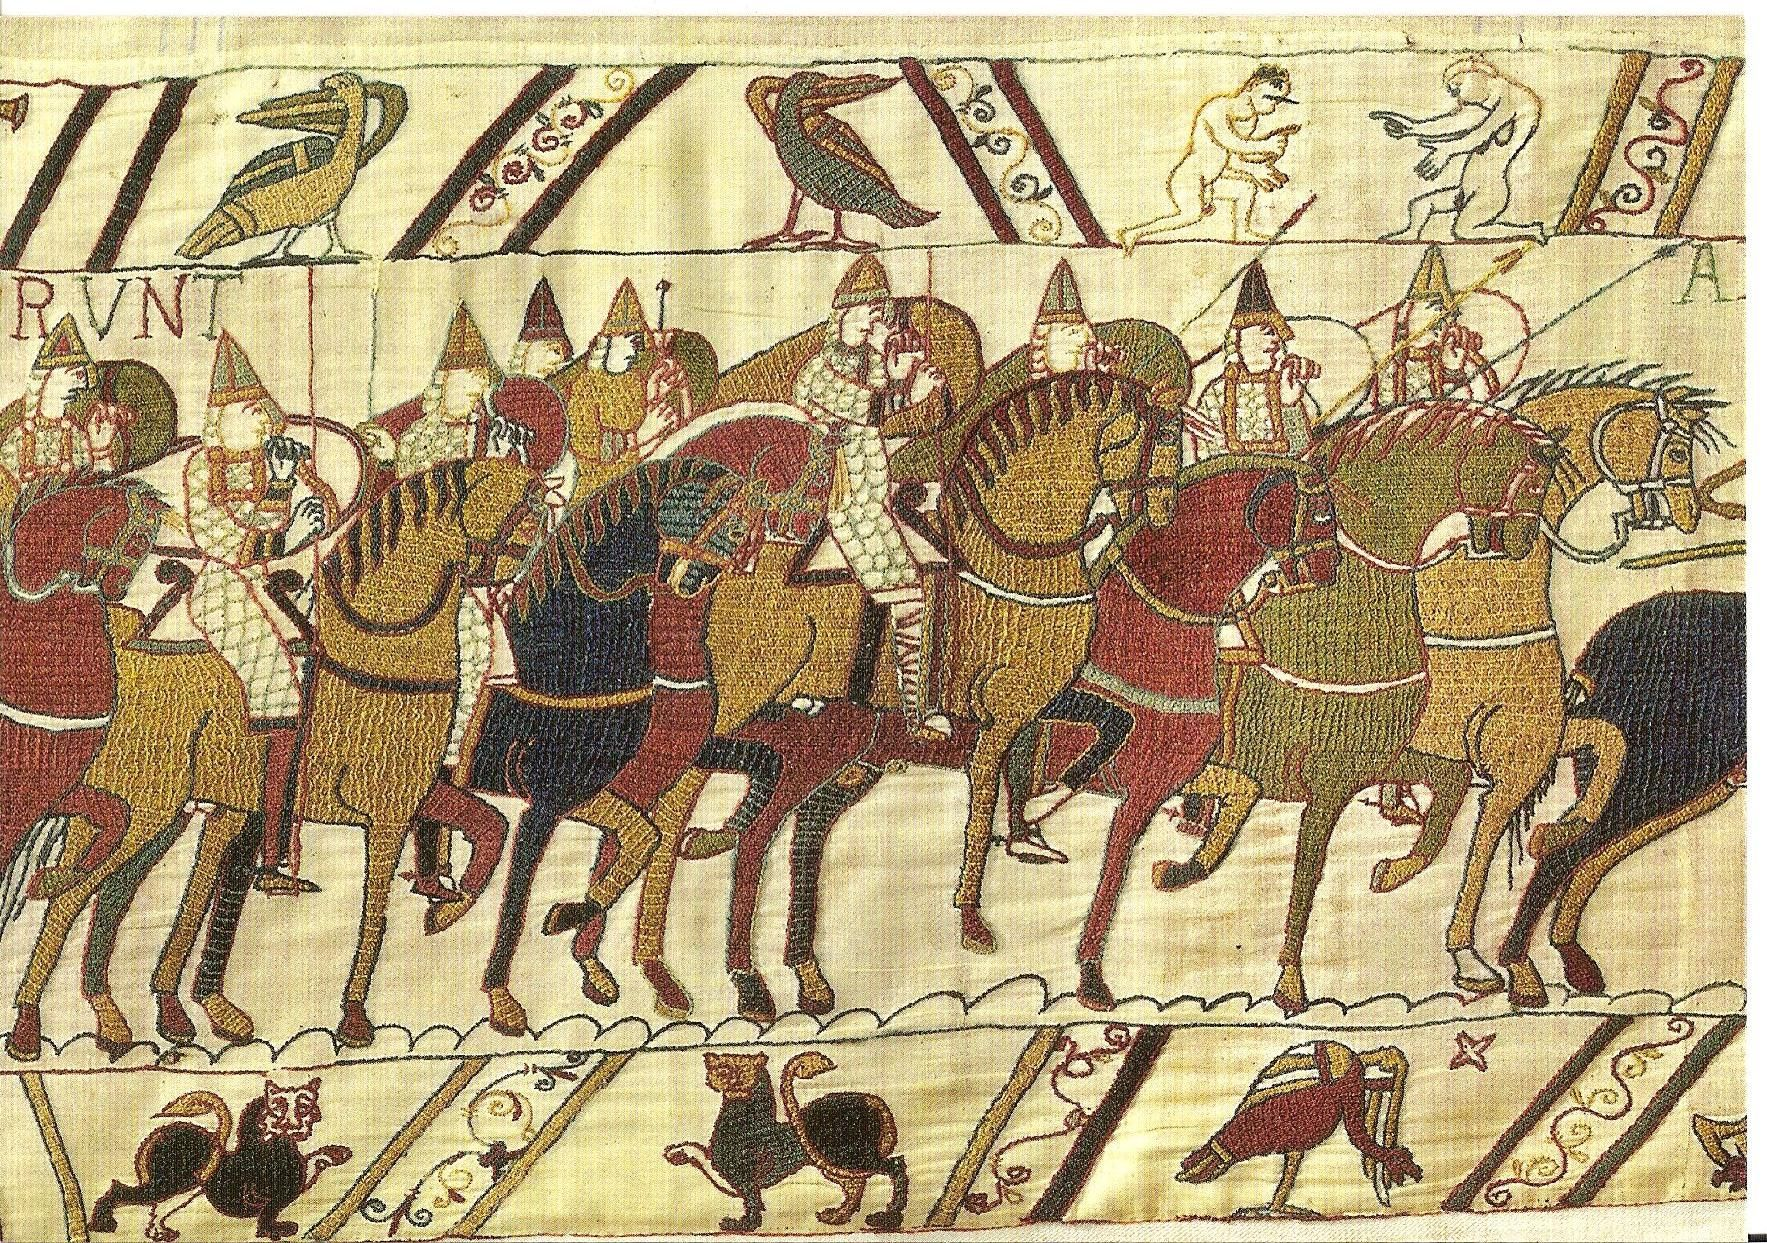 Teppich Von Bayeux Reading The Bayeux Tapestry Depicting The Battle Of Hastings And The